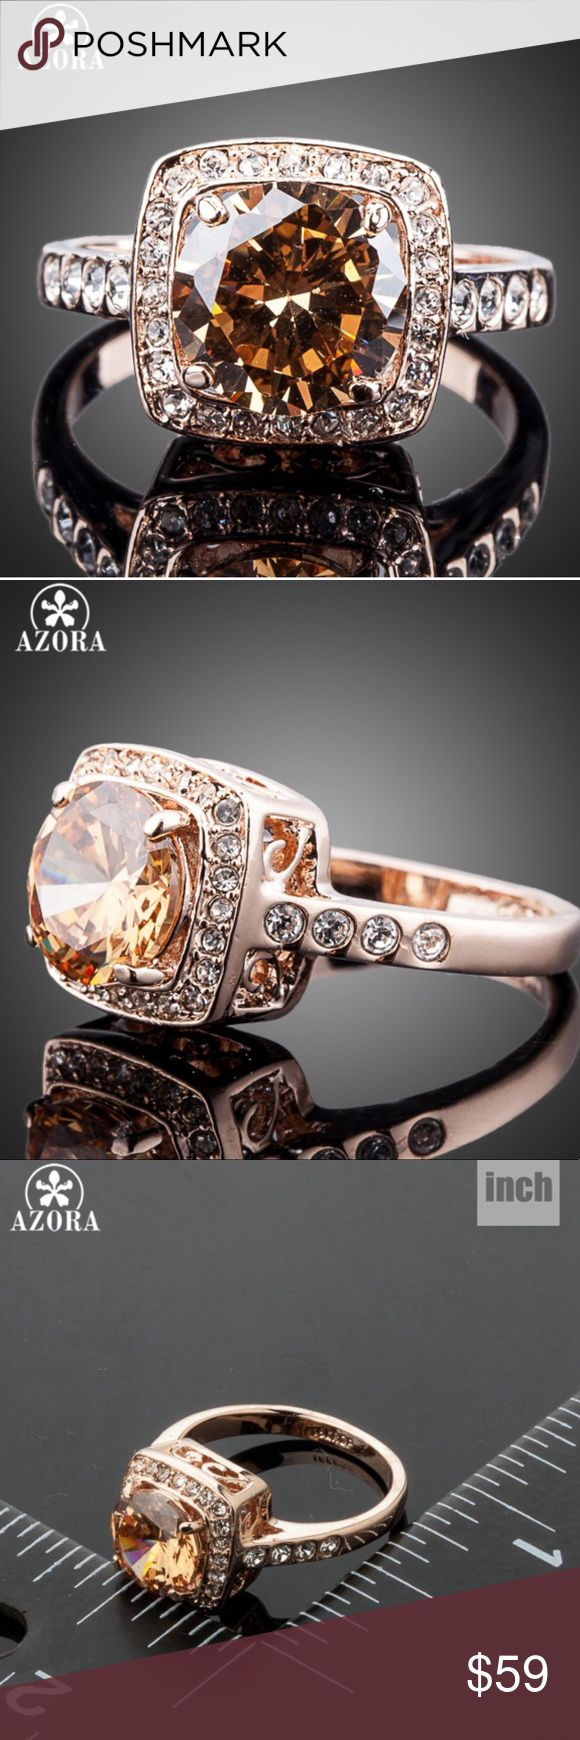 NWT GOLDEN BLISS NWT GOLDEN BLISS IS A GORGEOUS PIECE! SHES A CHAMPAGNE SWAROVSKI ELEMENT AND CLEAR ACCENTS TO COMPLIMENT THE MAIN ELEMENT THIS BEAUTY IS SET IN 18K ROSE GOLD OVER ALLOY MAIN MEASURES APPROX 10 MM X 10MM includes black velvet gift box AZORA Jewelry Rings